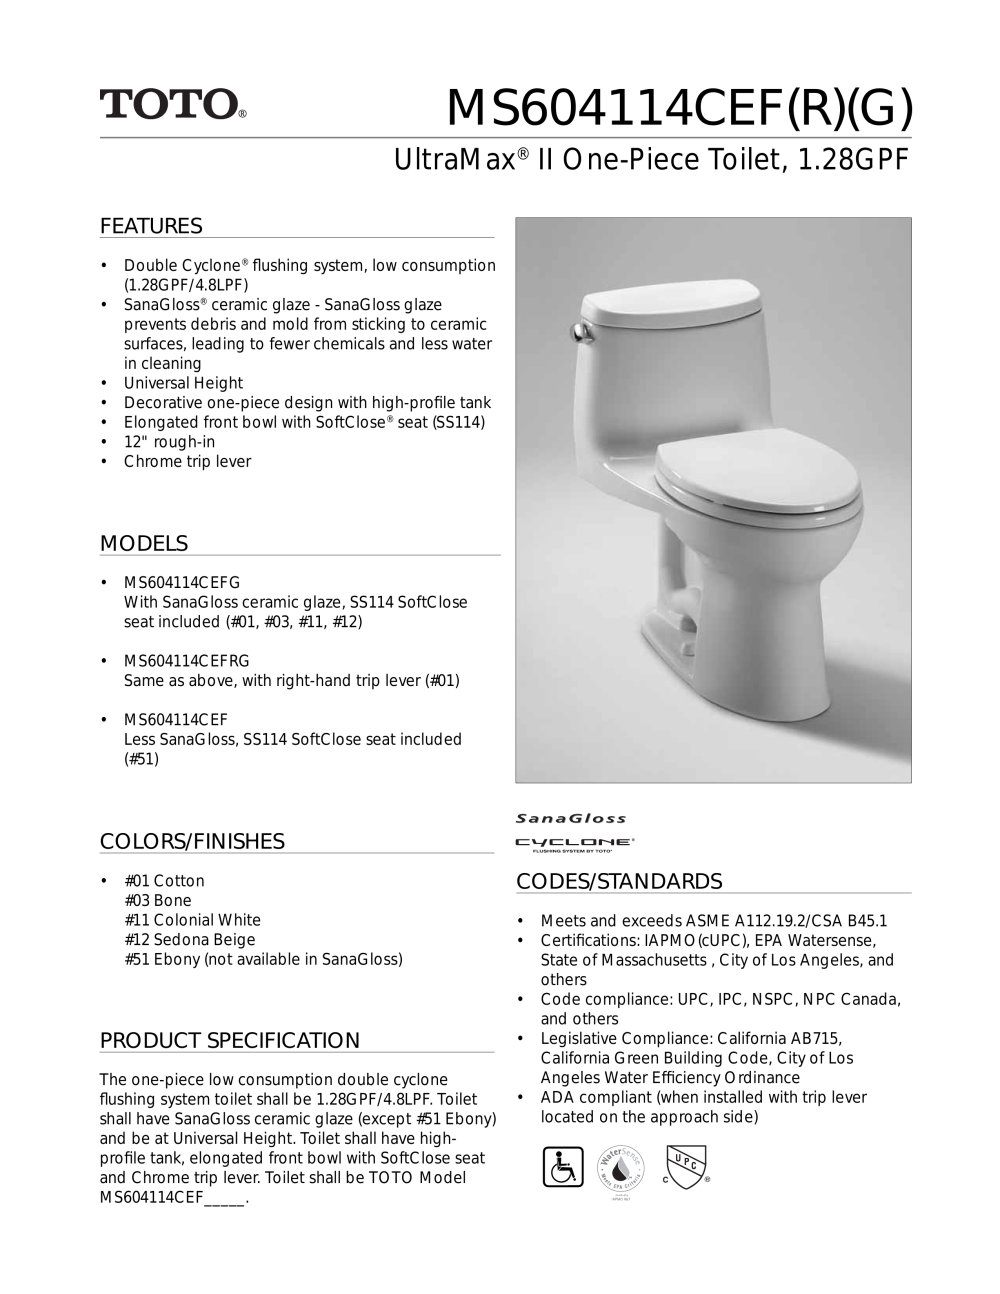 UltraMax ® II One-Piece Toilet - Toto - PDF Catalogues ...